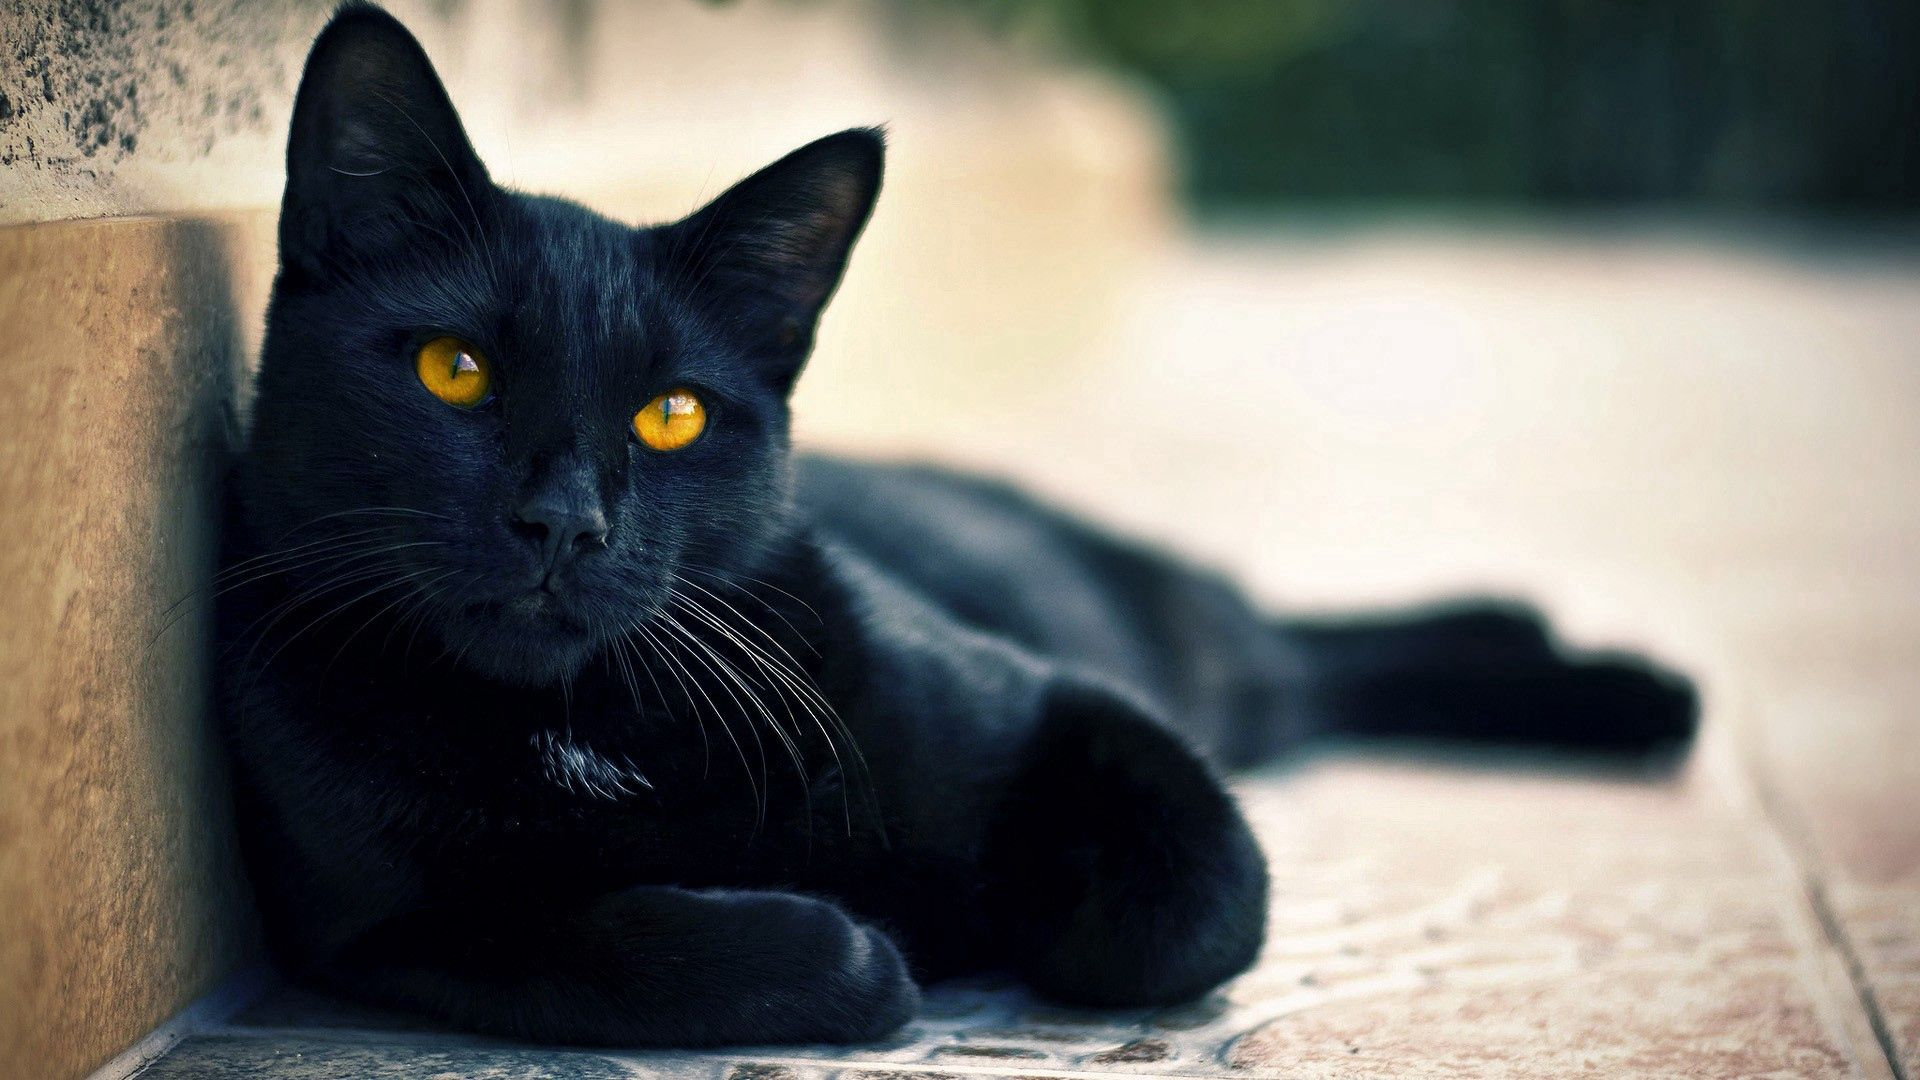 121637 download wallpaper Animals, Black Cat, To Lie Down, Lie, Relaxation, Rest screensavers and pictures for free